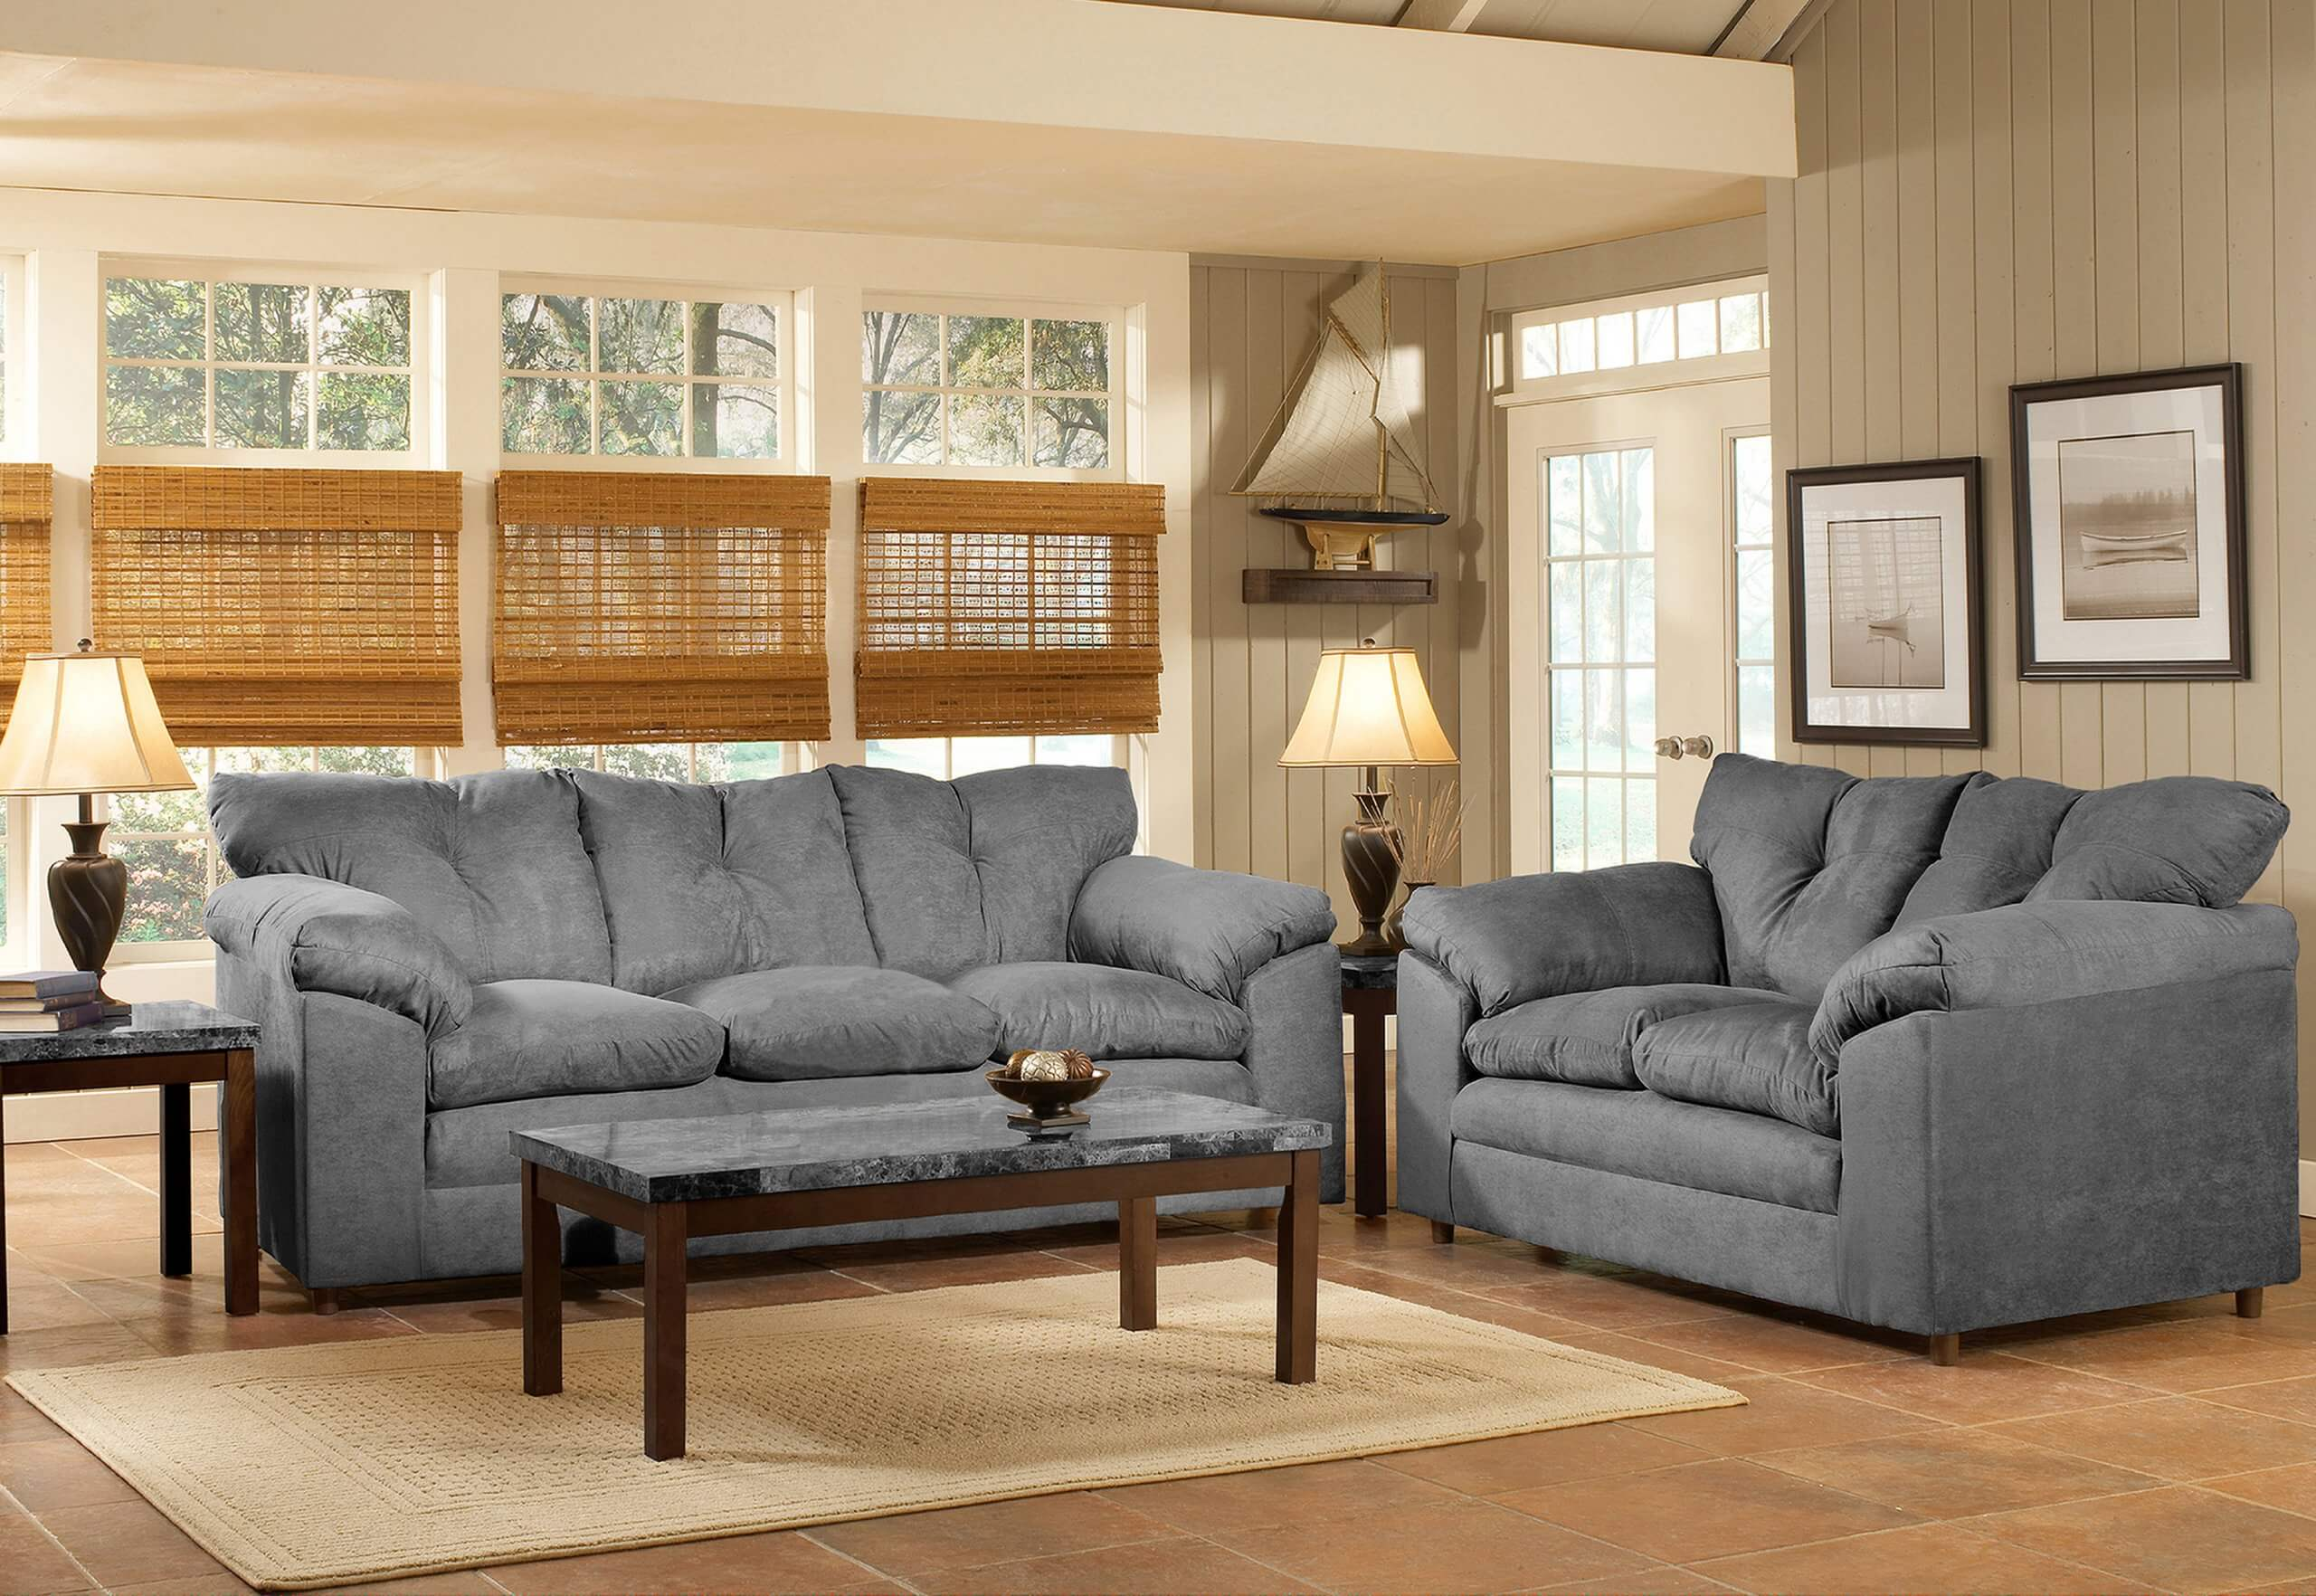 Create the perfect living room for your home by optimizing the color, lighting, furniture placement, accessories, and more. Bulldozer Graphite Sofa and Loveseat | UFO